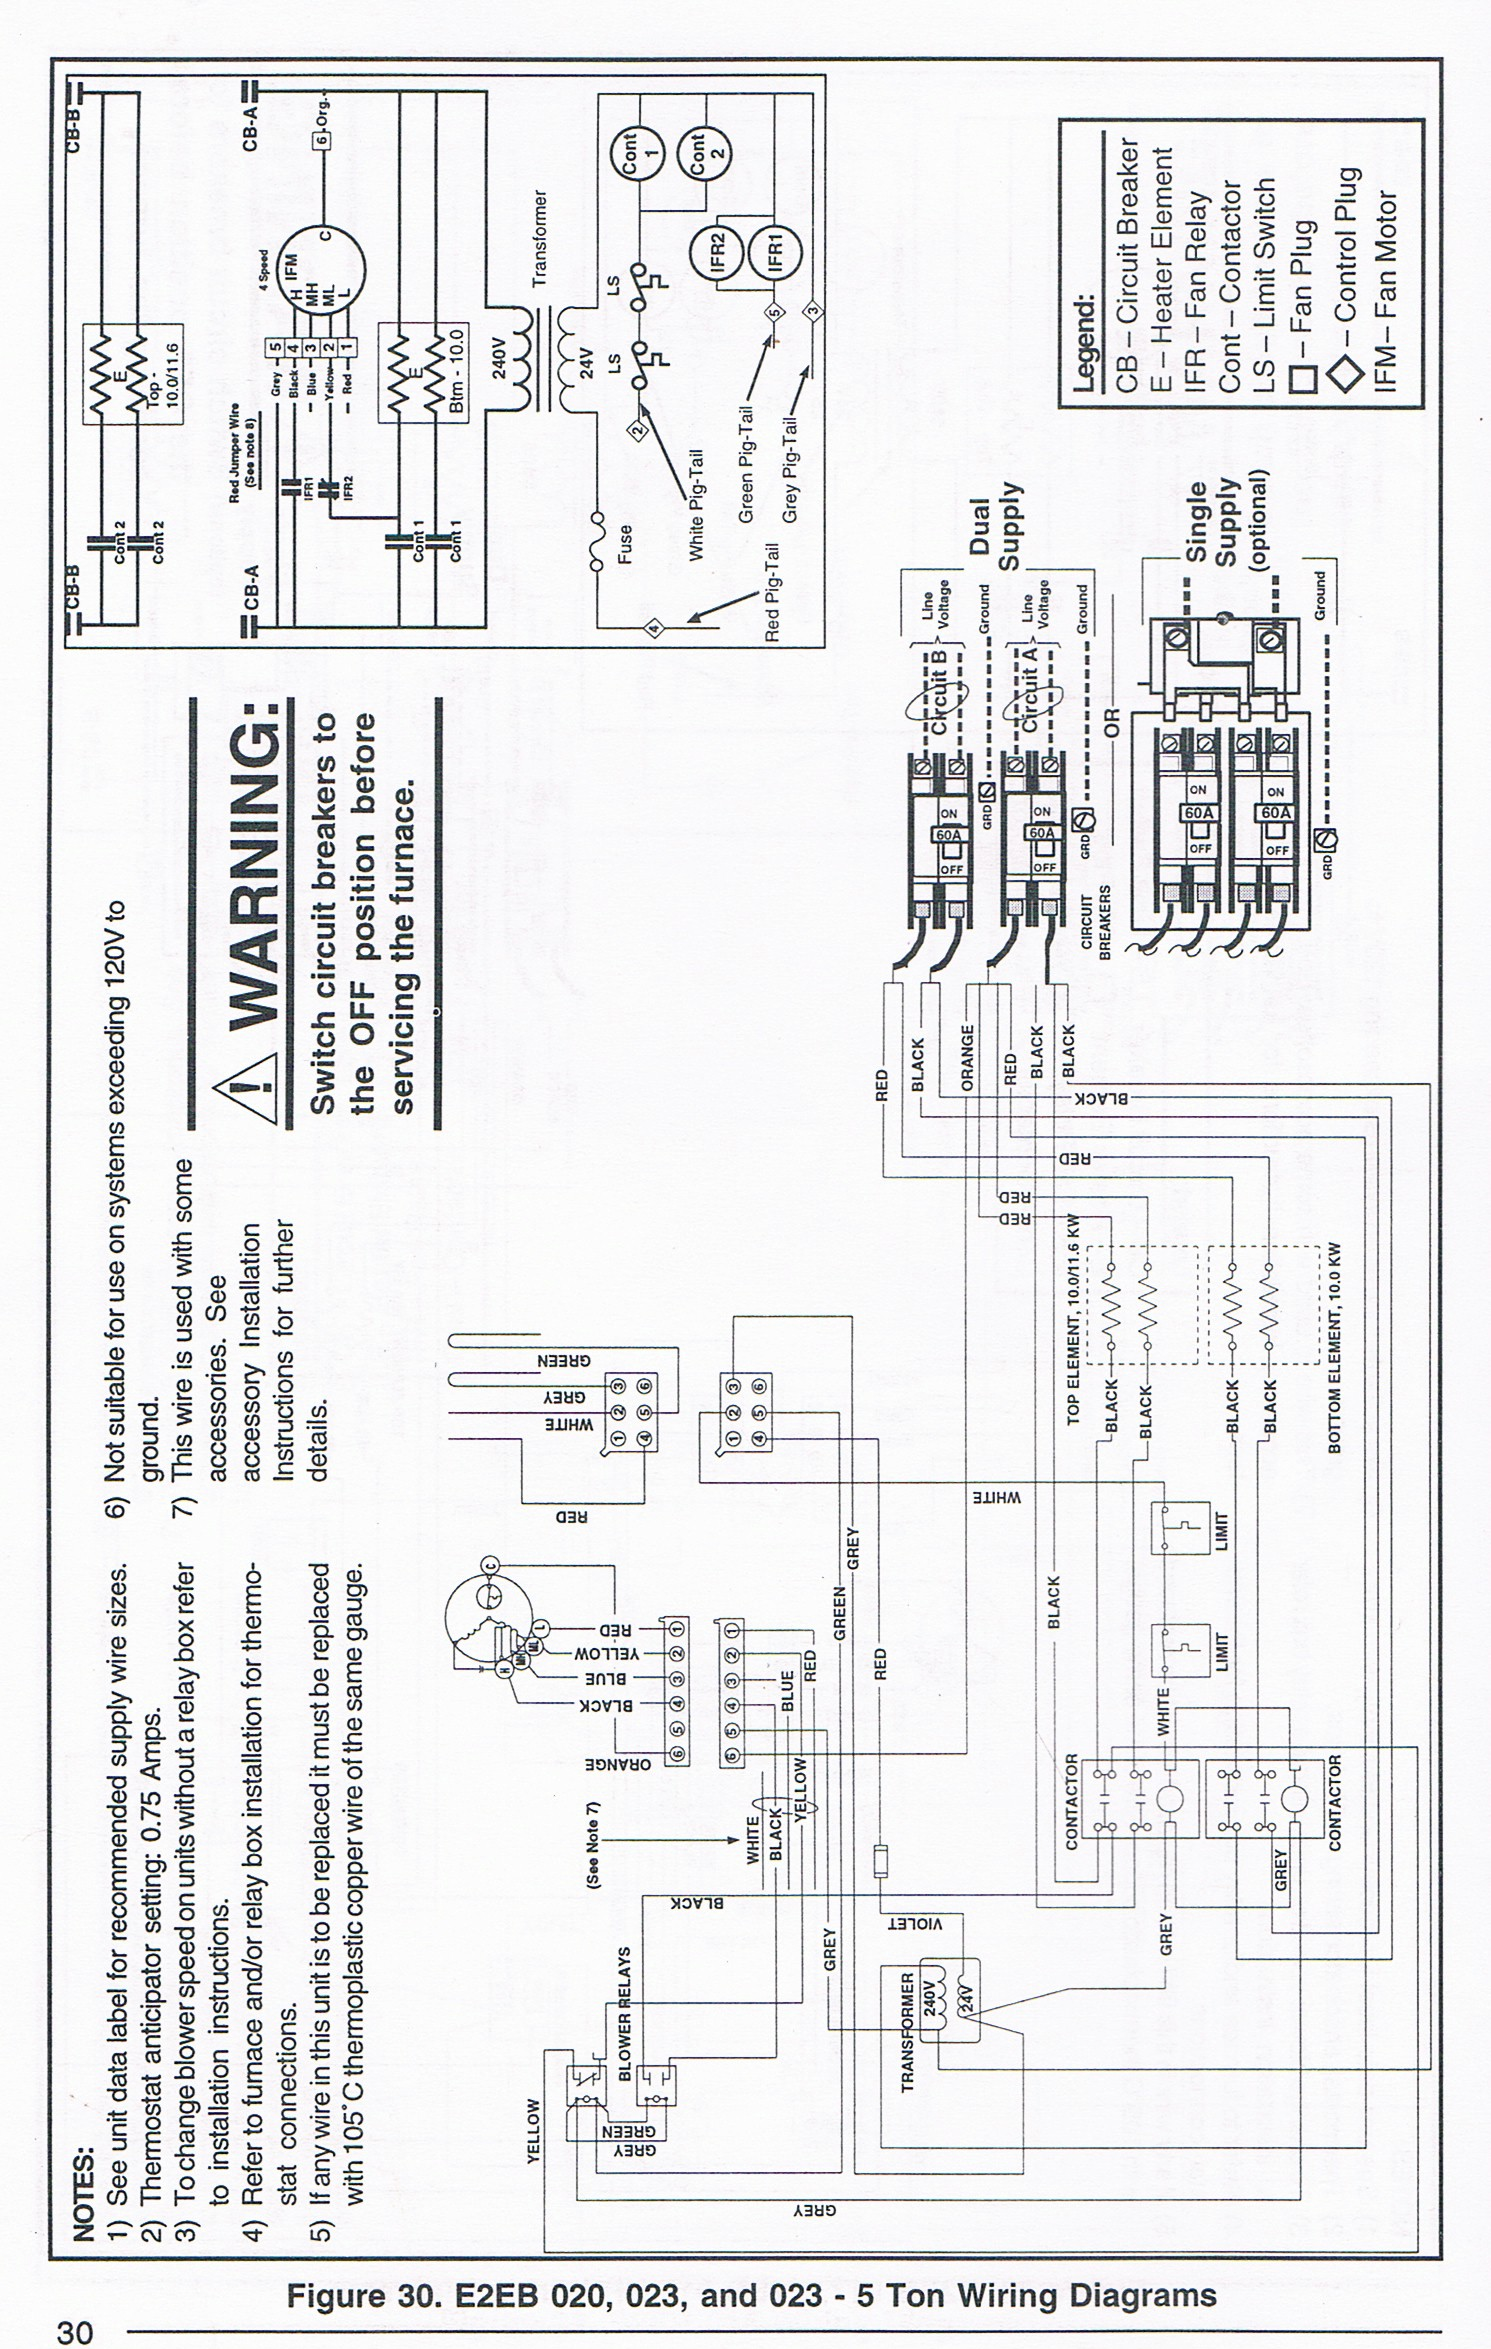 2011 05 04_234443_e2eb e2eb 017ha wiring diagram intertherm wiring diagram \u2022 wiring intertherm wiring diagram at n-0.co